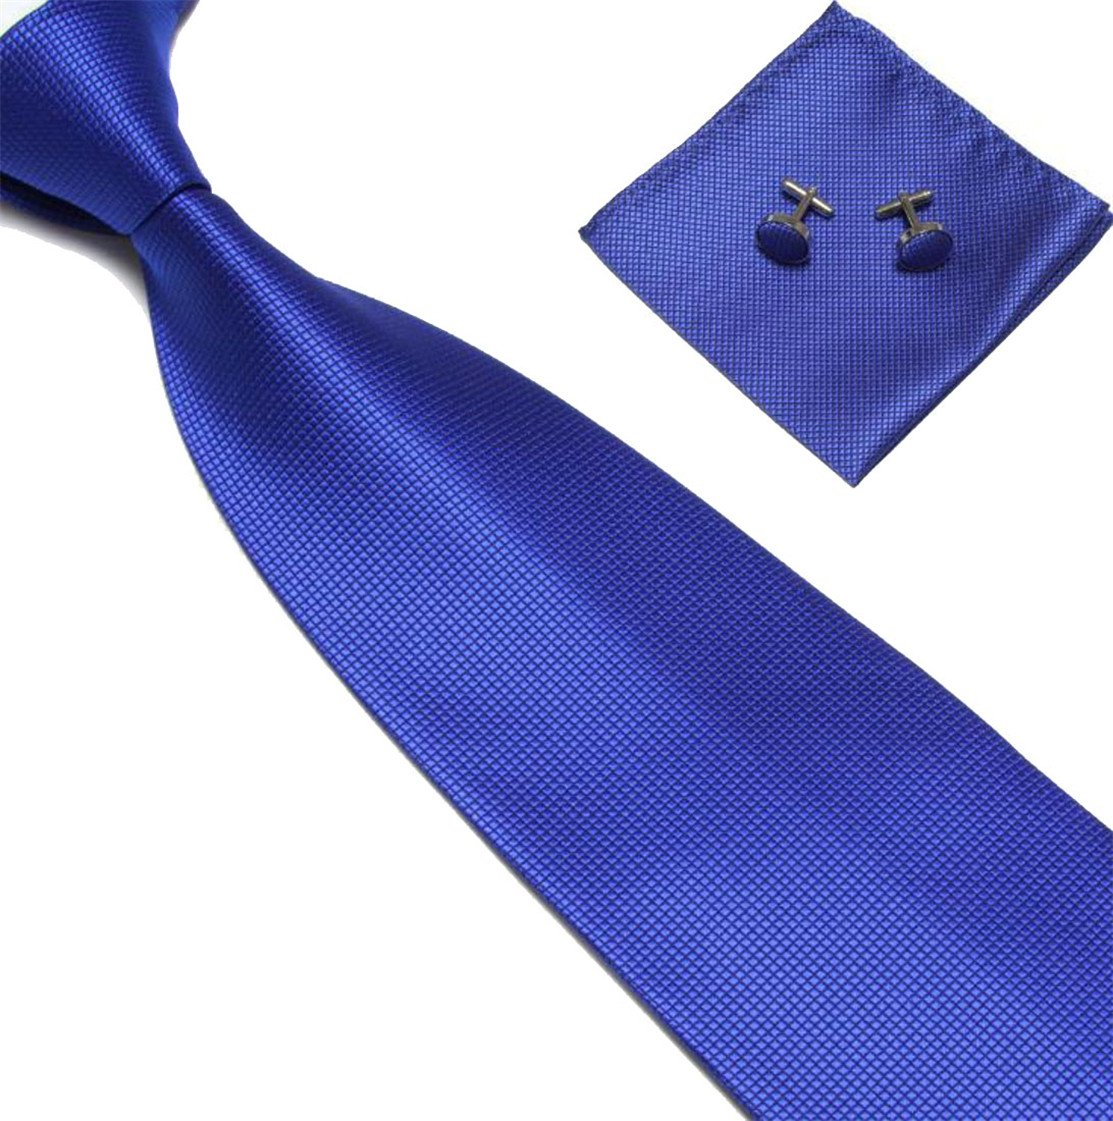 Etecredpow Mens Cufflinks Matching Square Solid Jacquard Weddings Neckties Jewelry Blue One Size